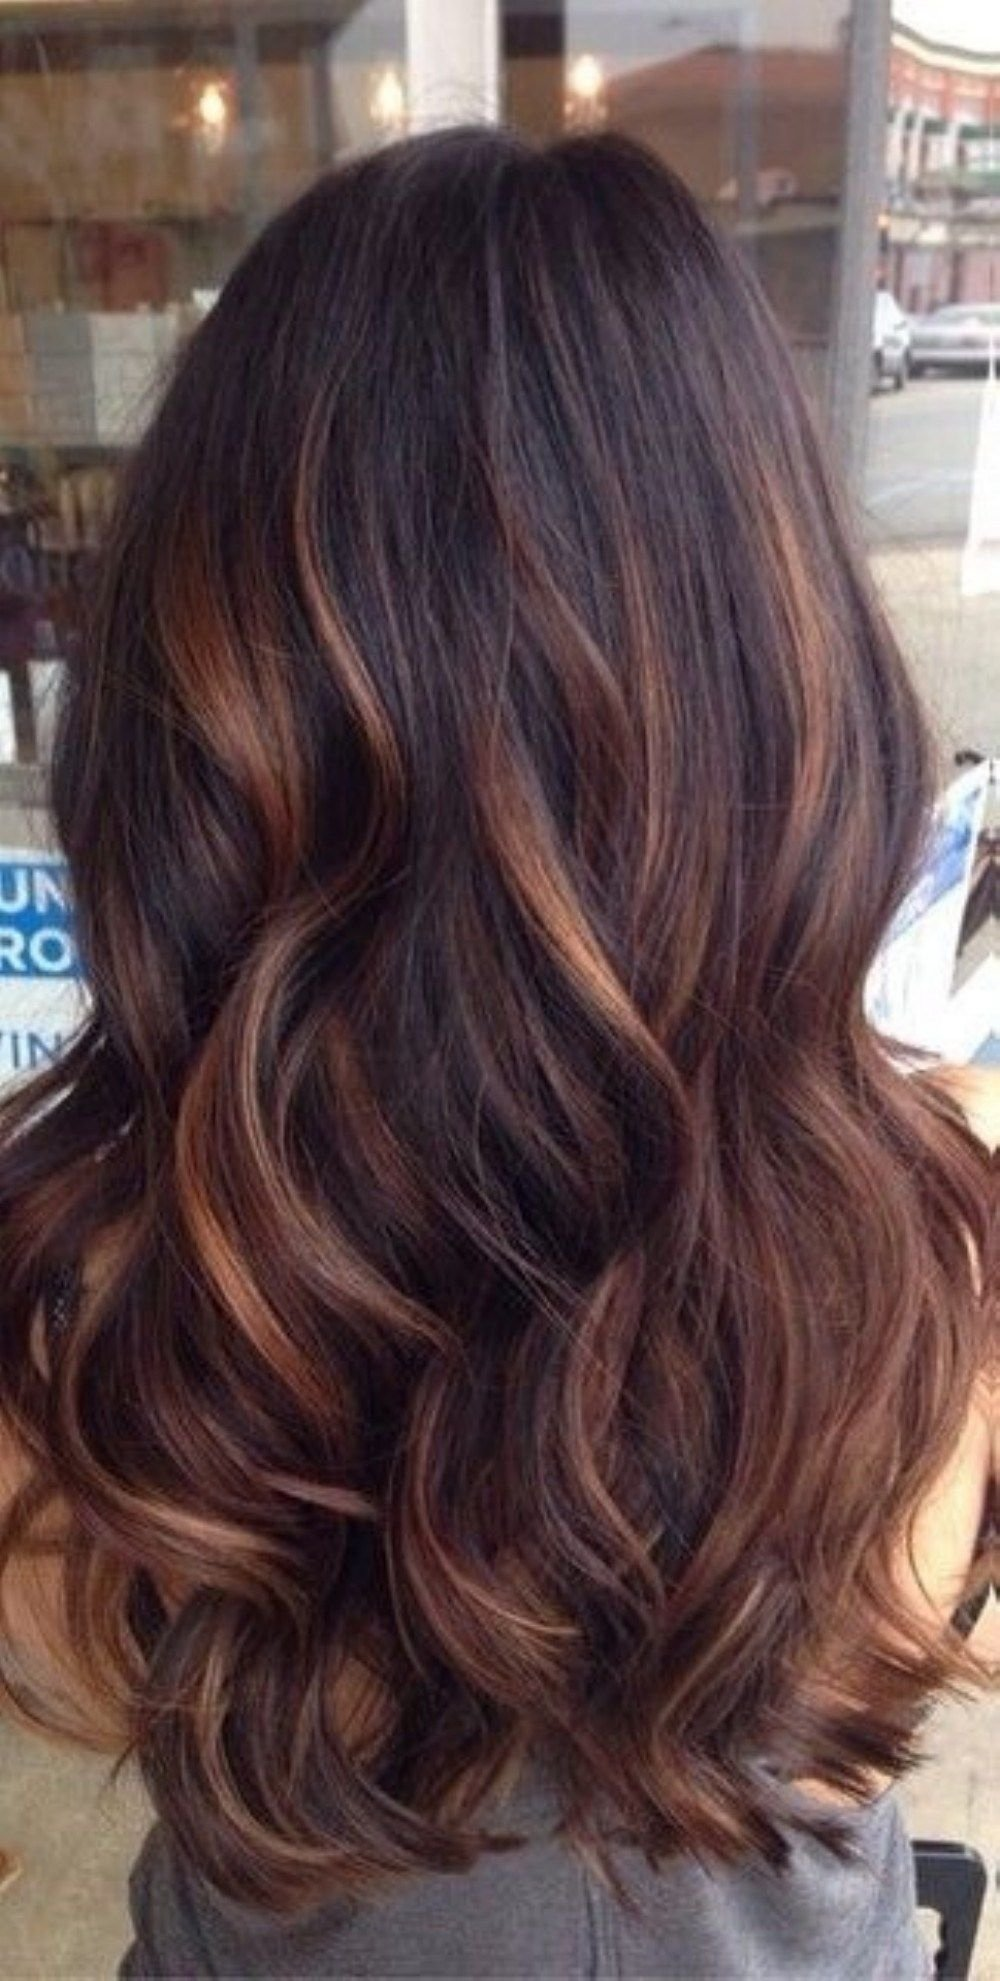 top brunette hair color ideas to try 2017 (10) | hair | pinterest